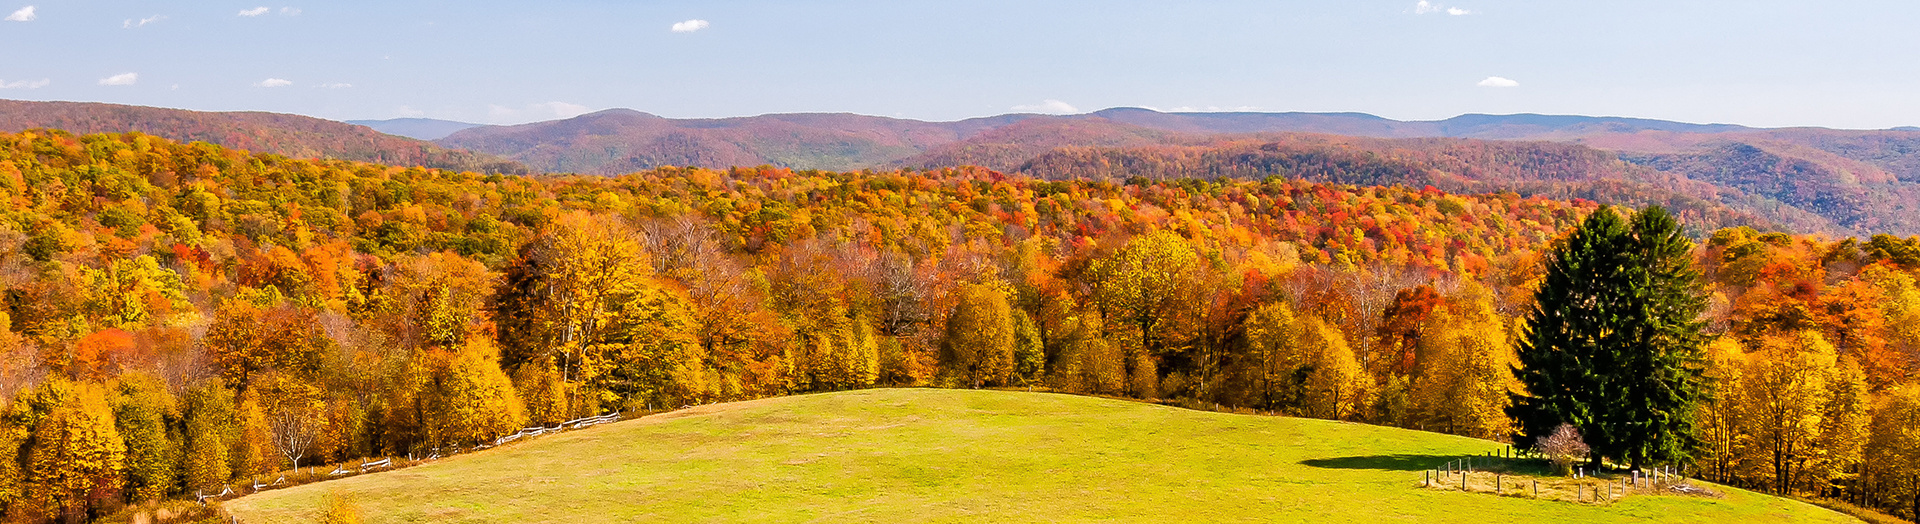 on a hill overlooking a fall forest and hills beyond